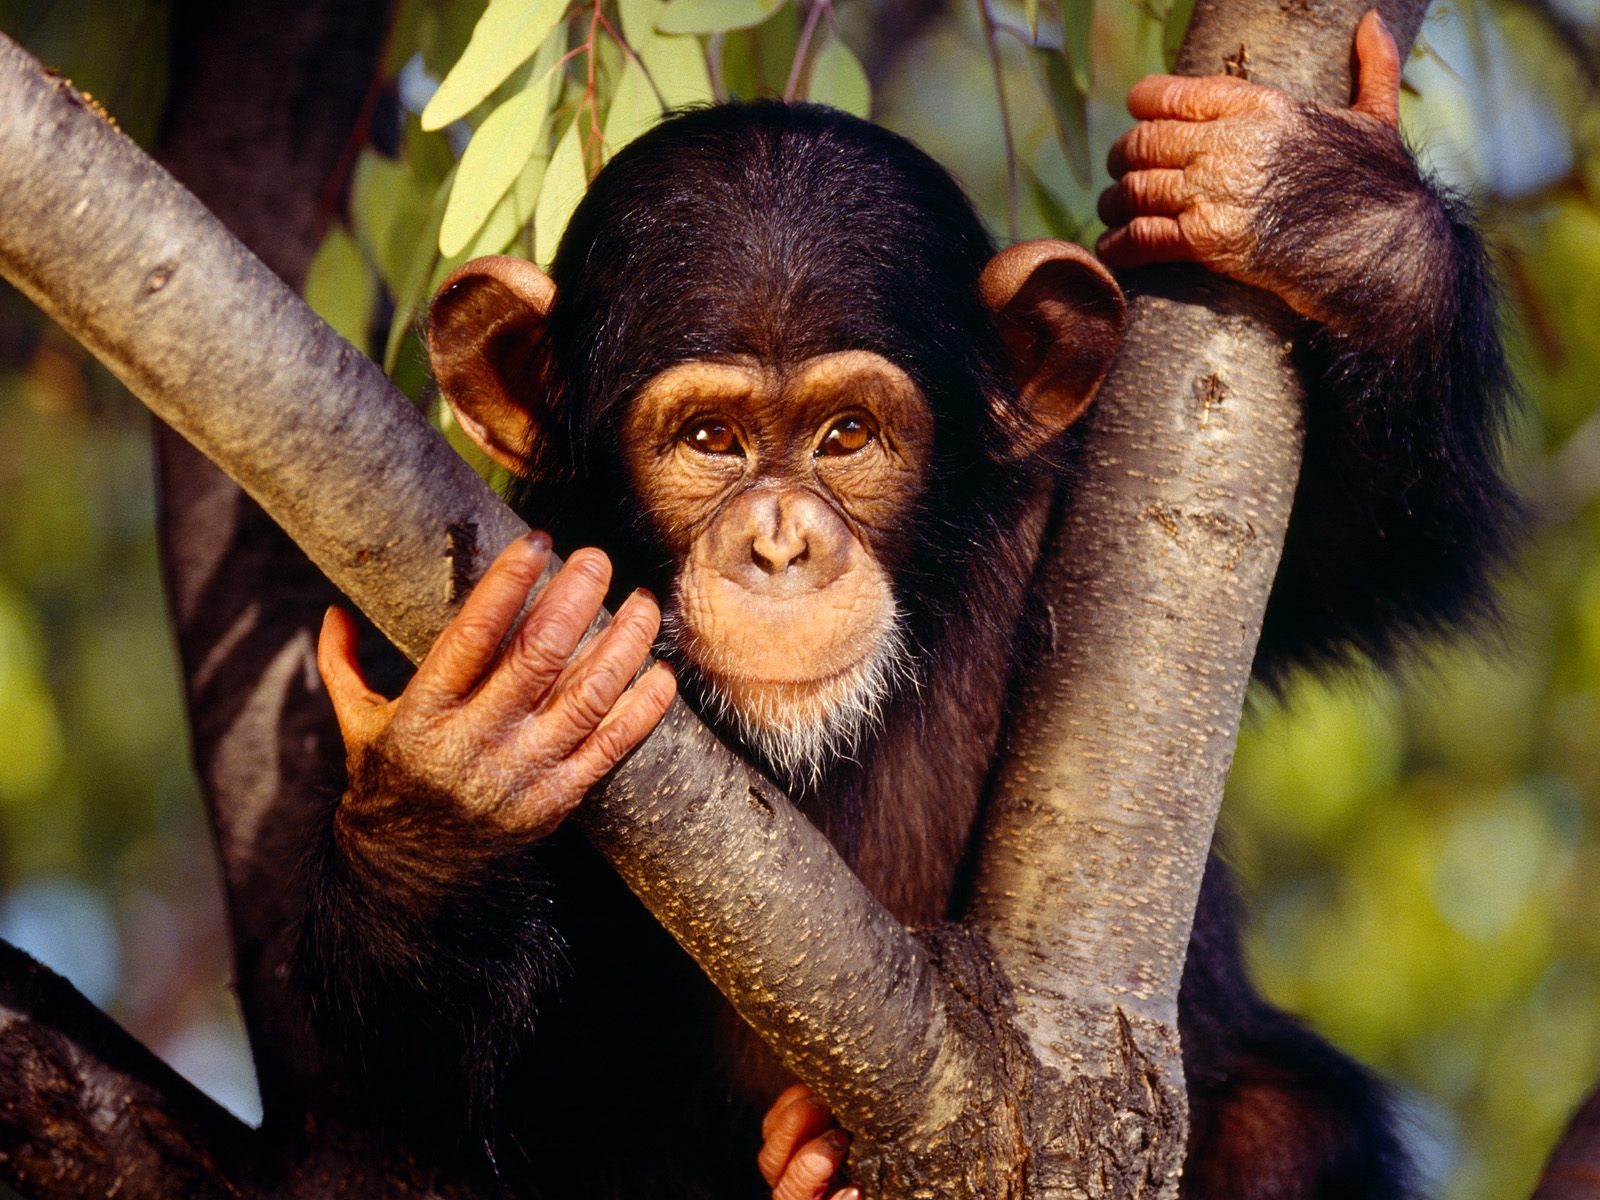 Chimpanzee Wallpapers and Backgrounds Image